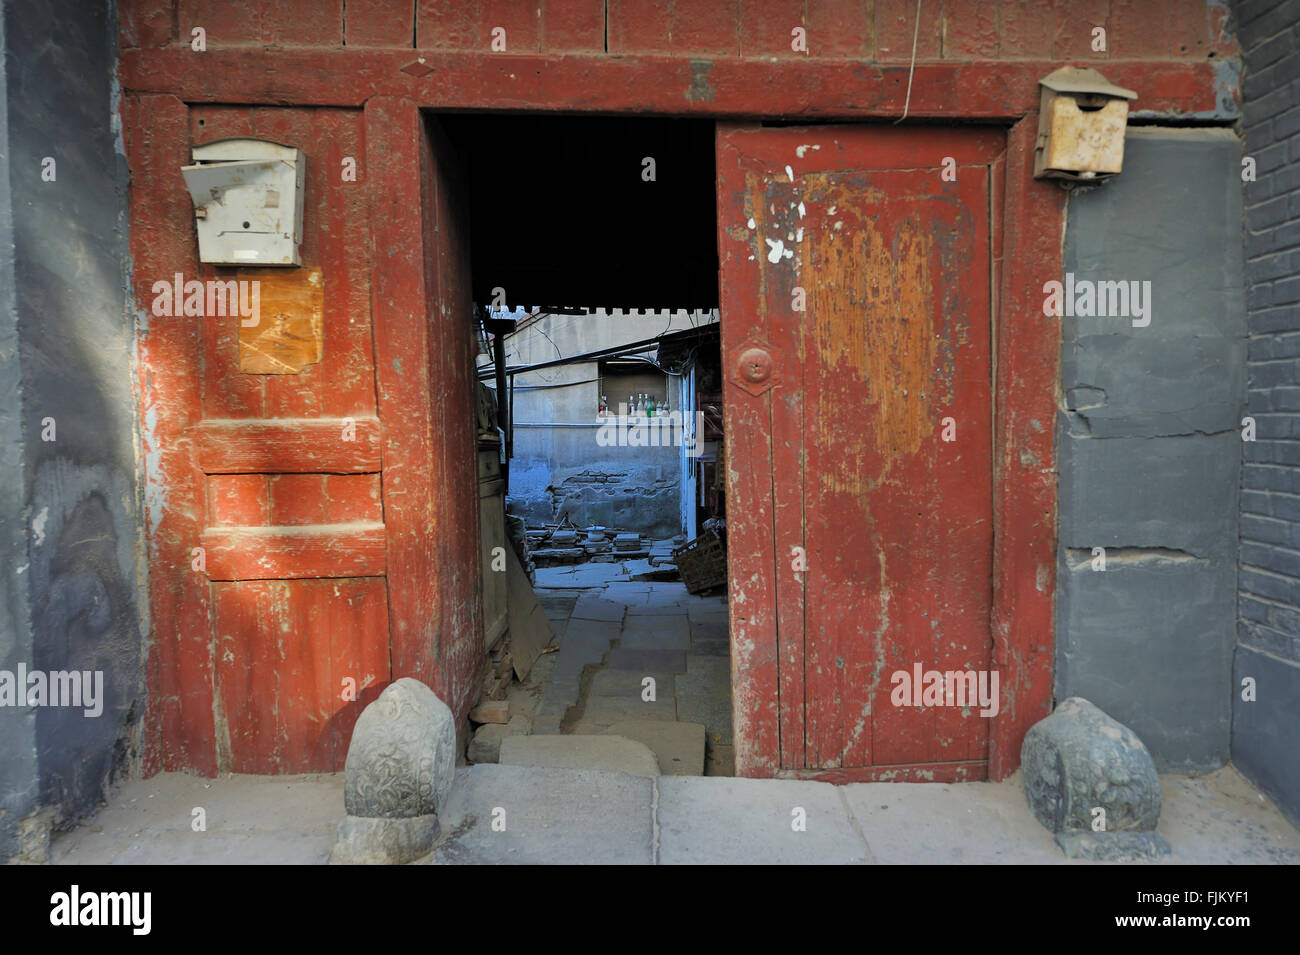 A small street in a Hutong in Beijing,China - Stock Image